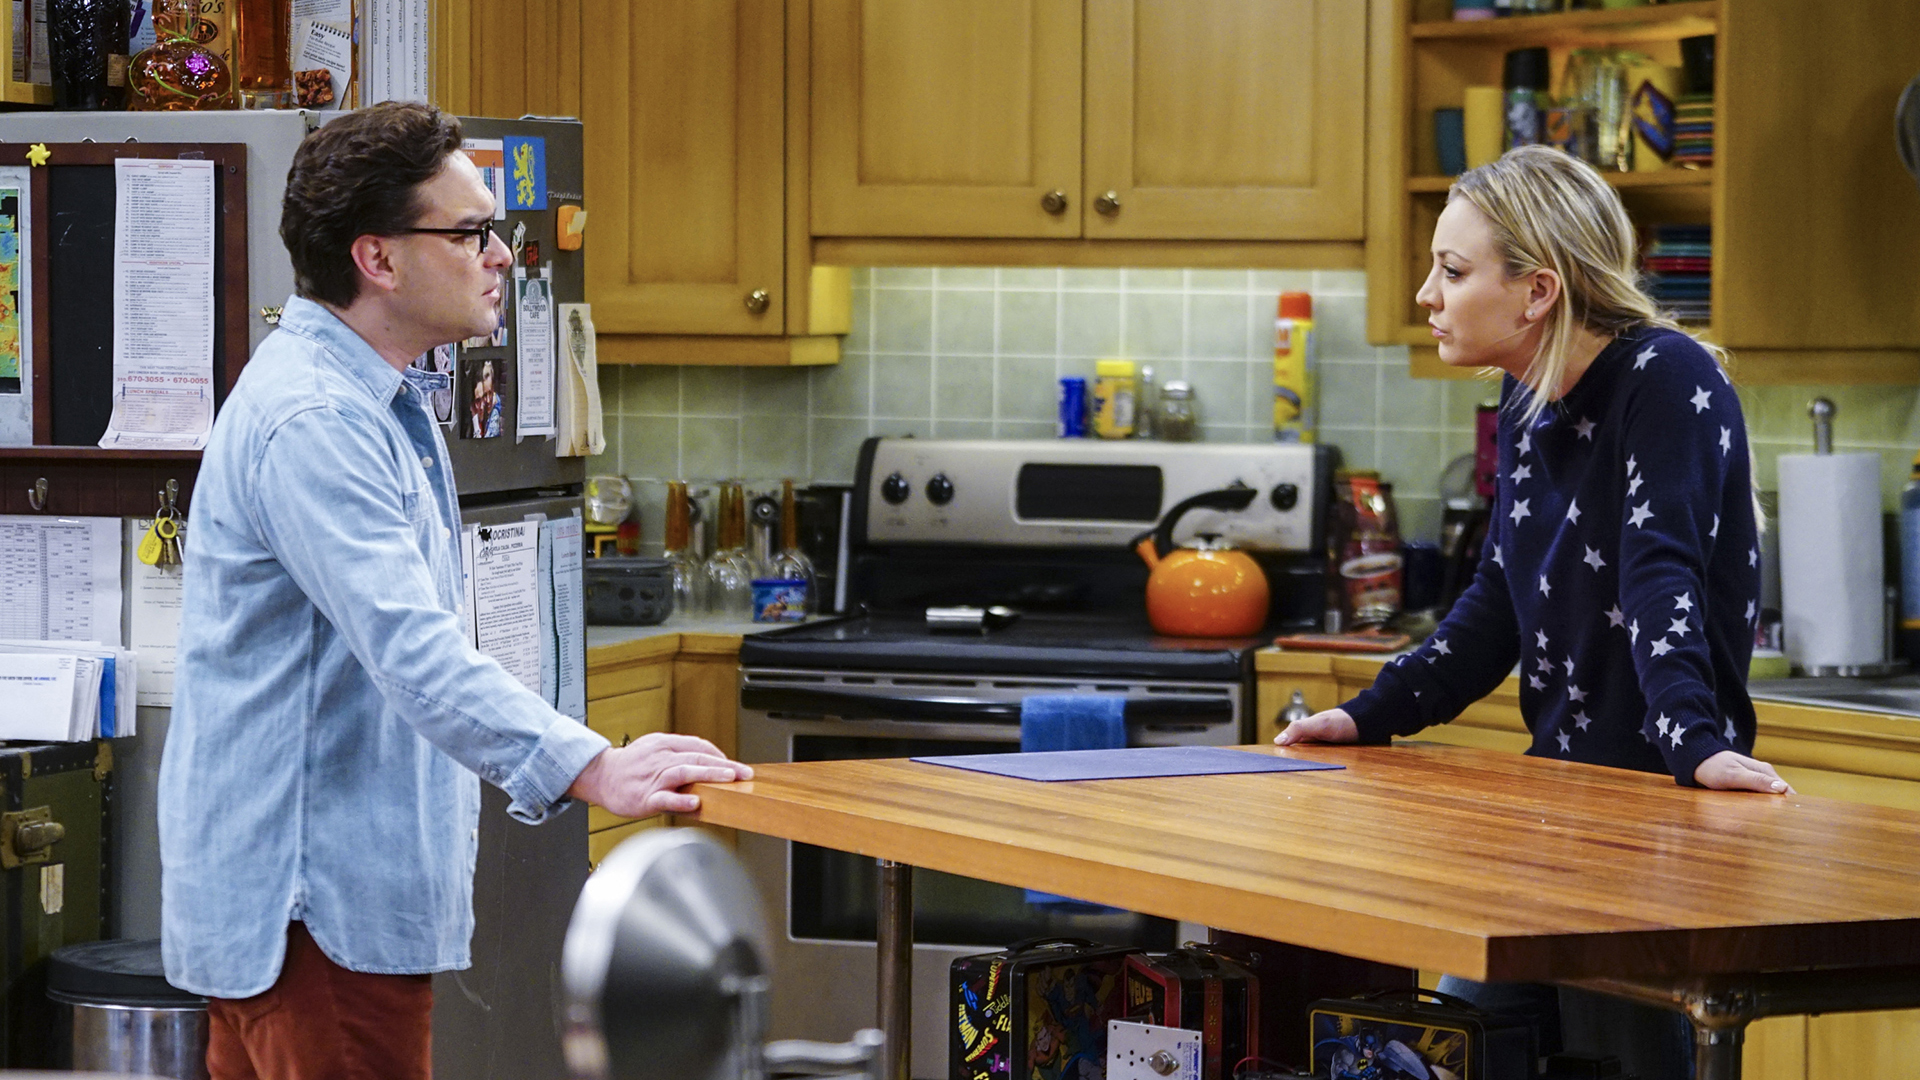 Leonard and Penny find themselves at a standstill in the kitchen.